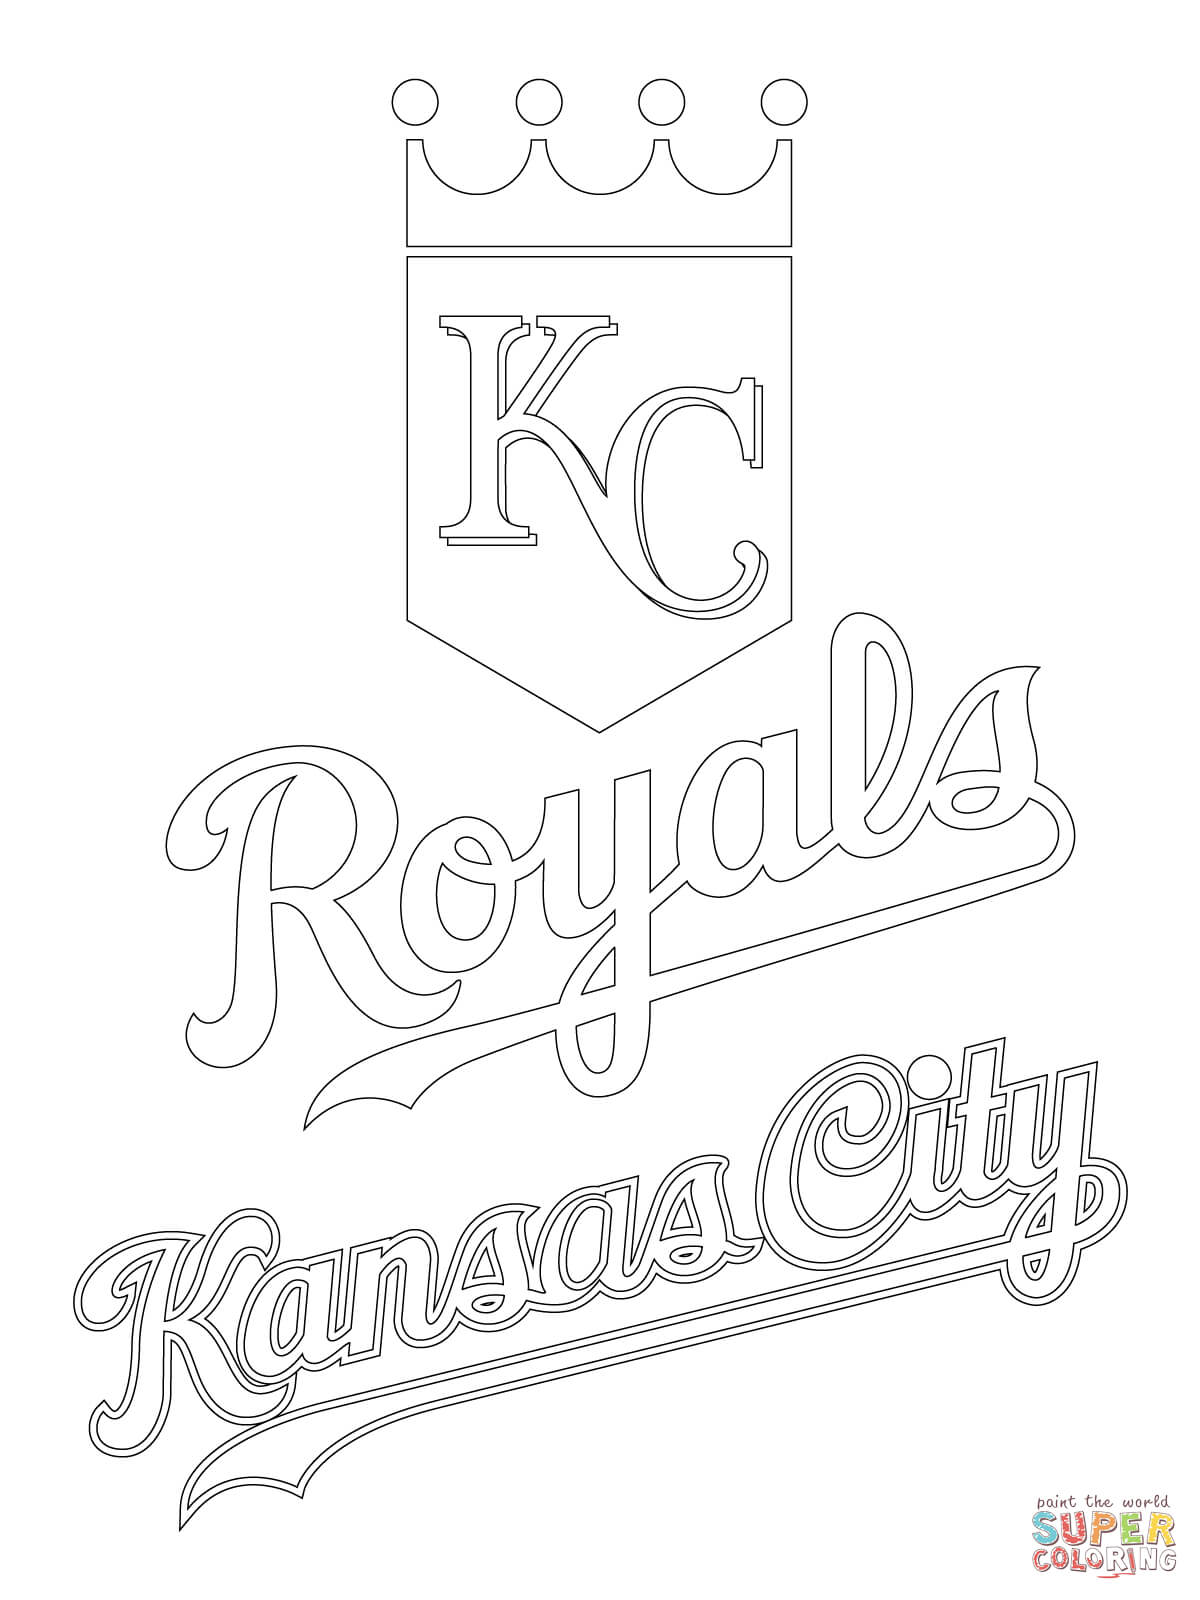 Kansas City Royals Logo Coloring Page